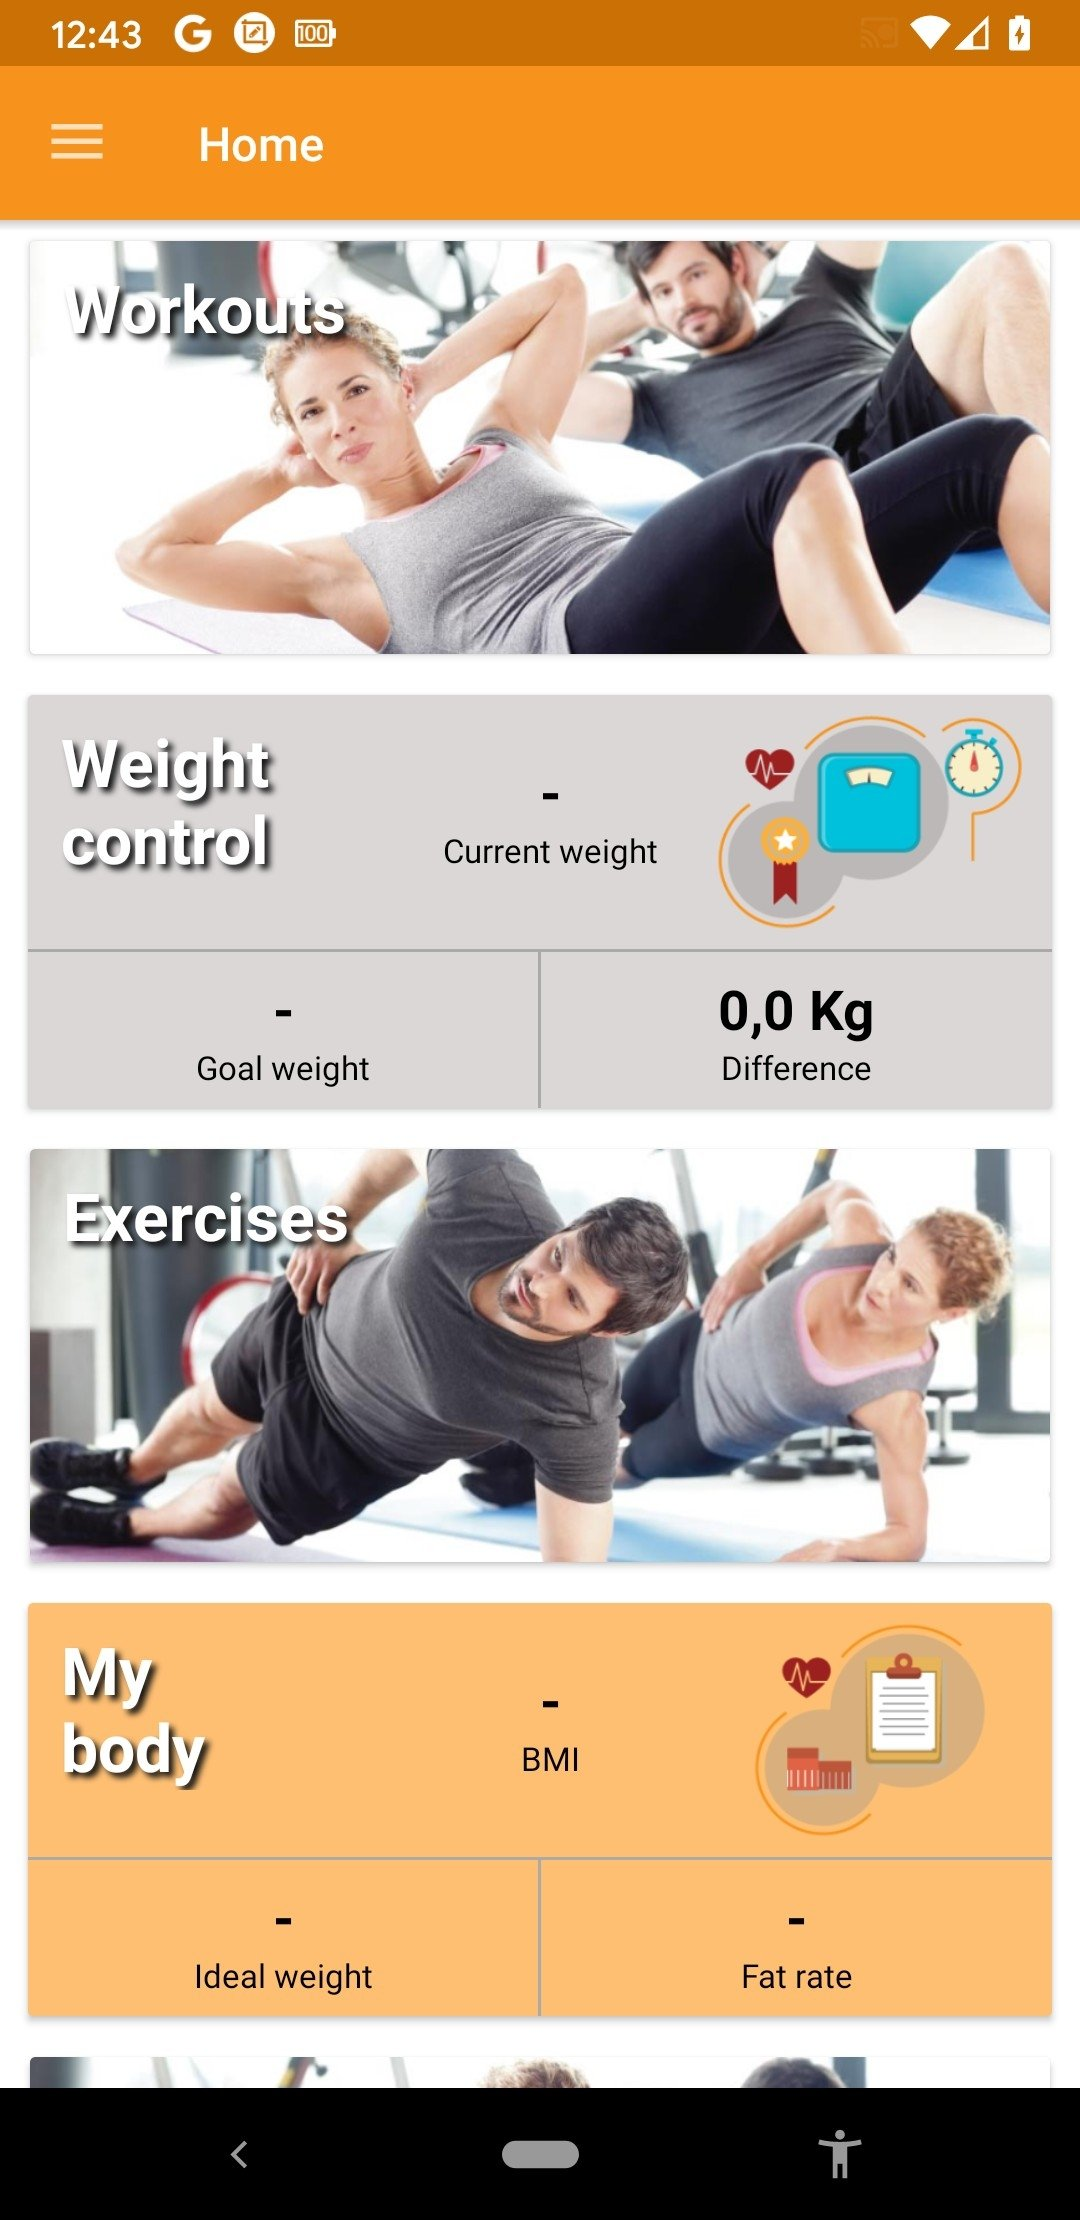 Home Workouts Android image 6